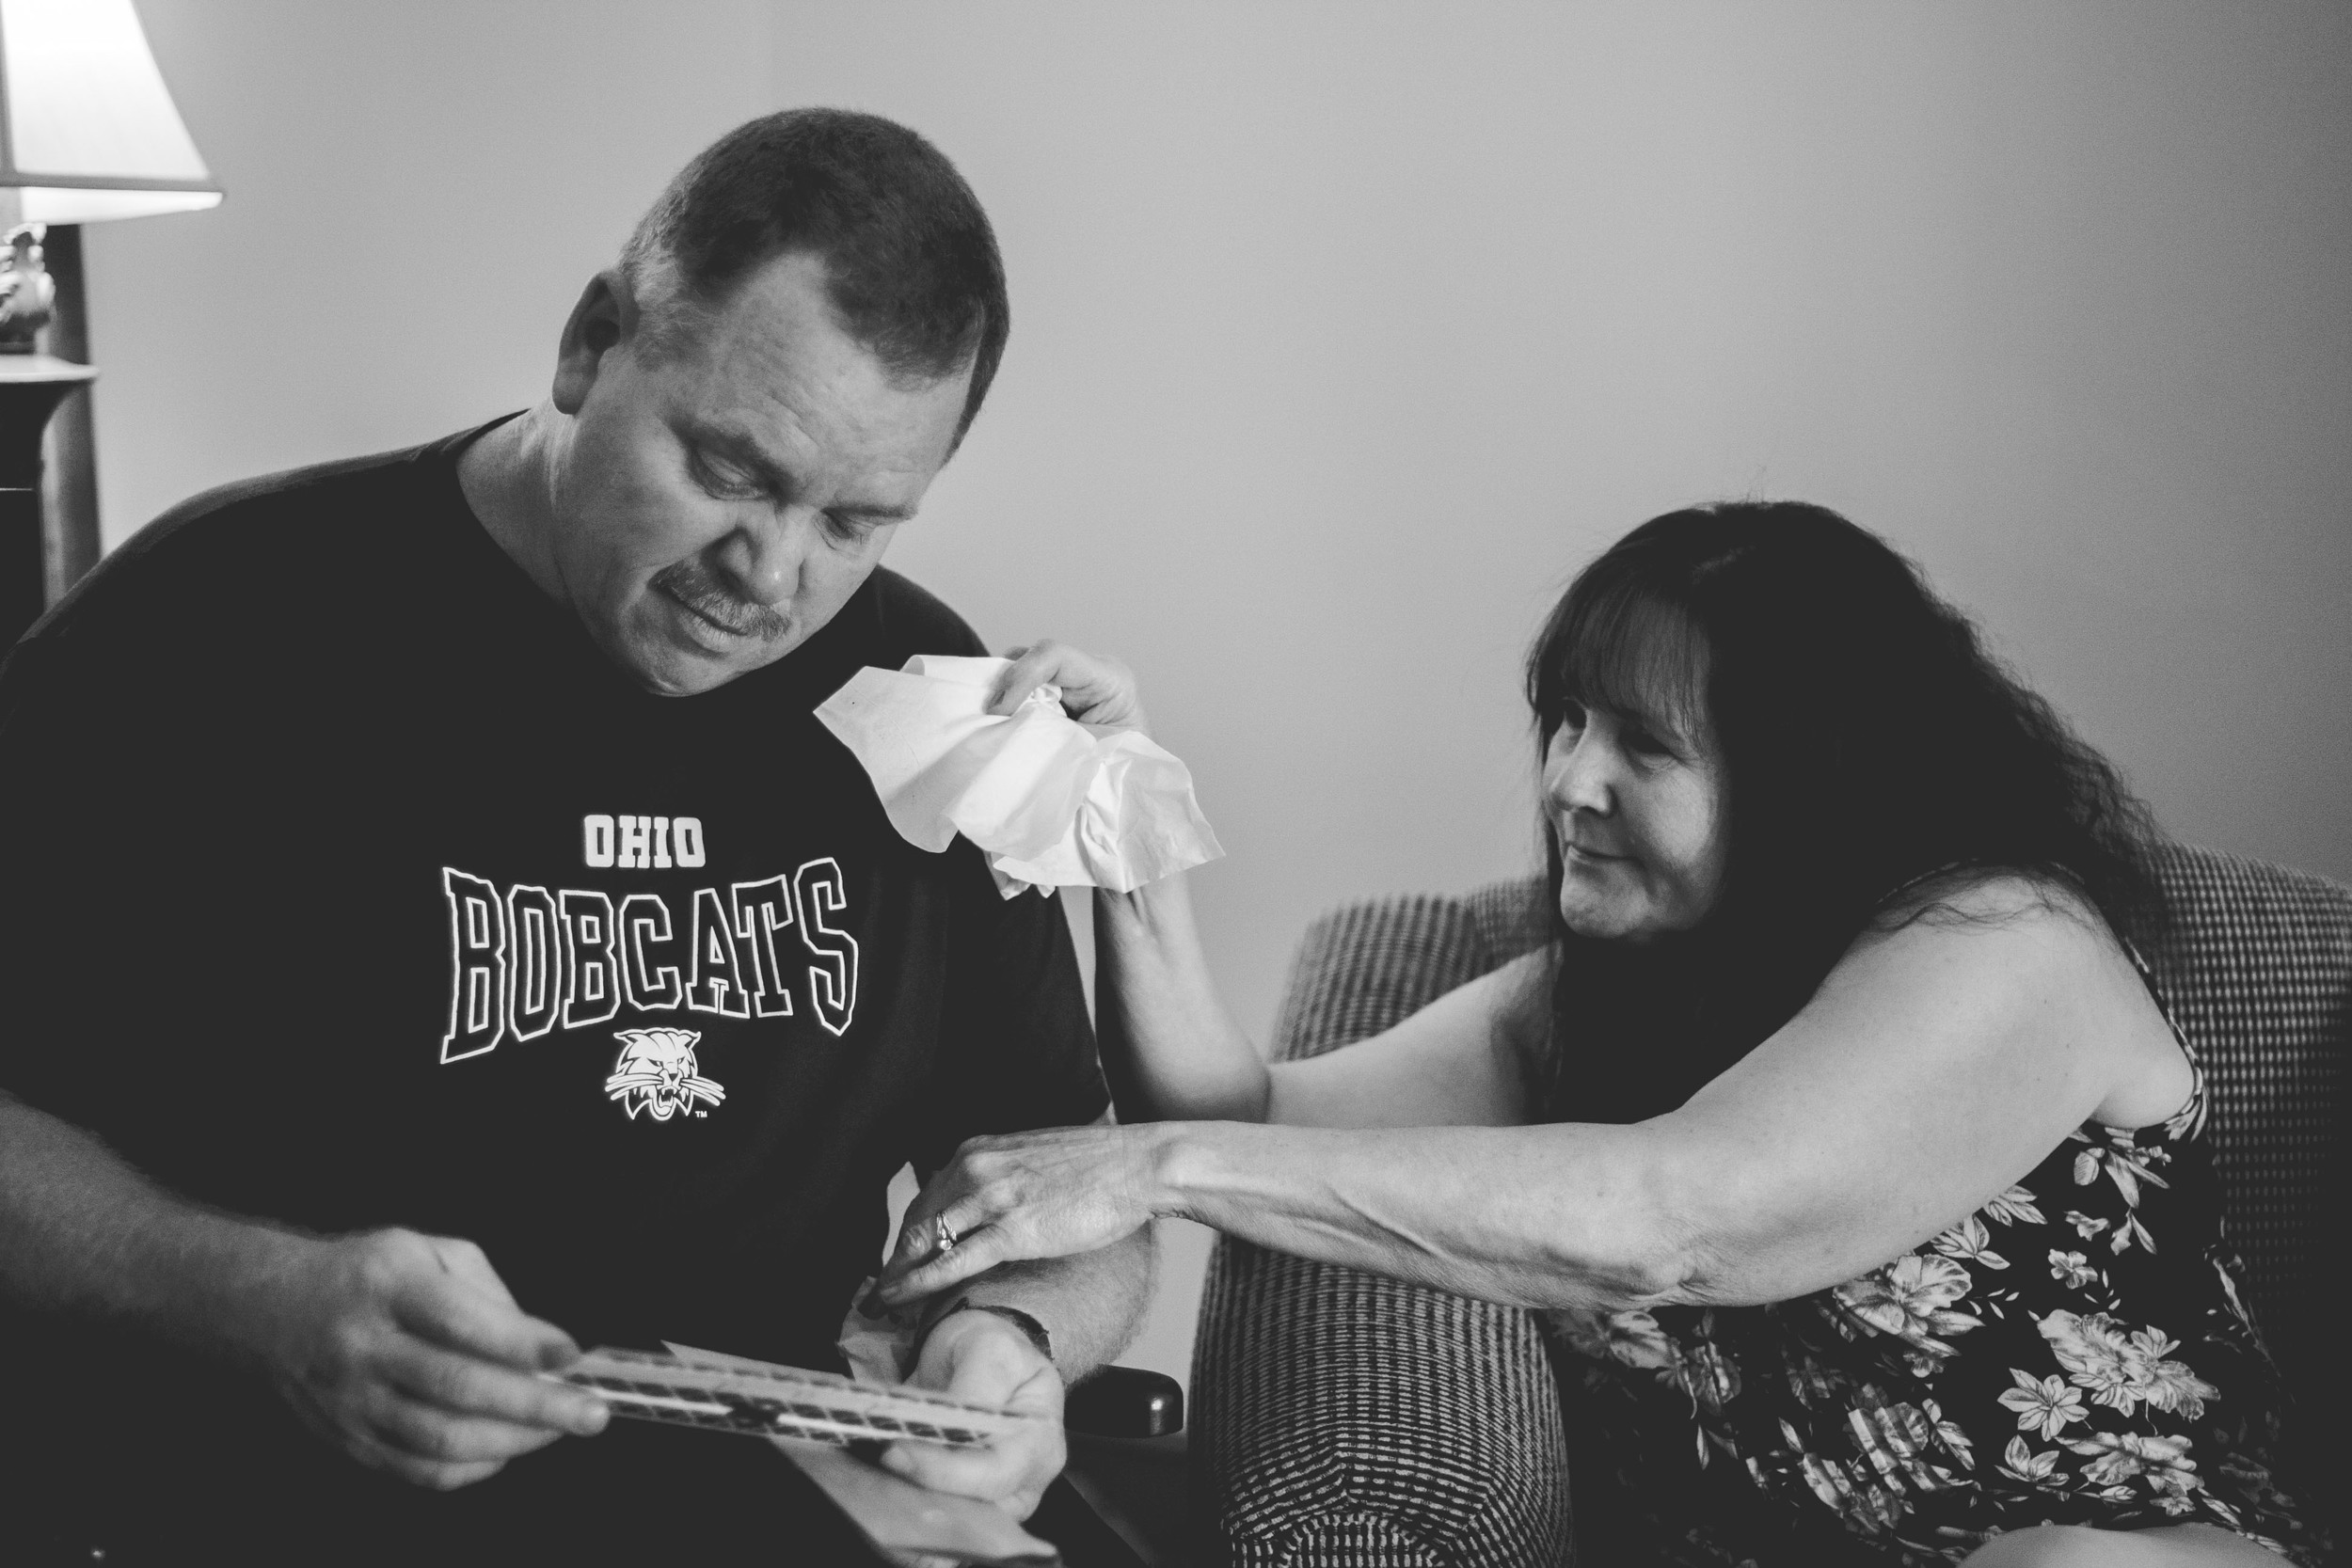 Jessica created beautiful cards with letters inside — many tissues were passed around during these moments.